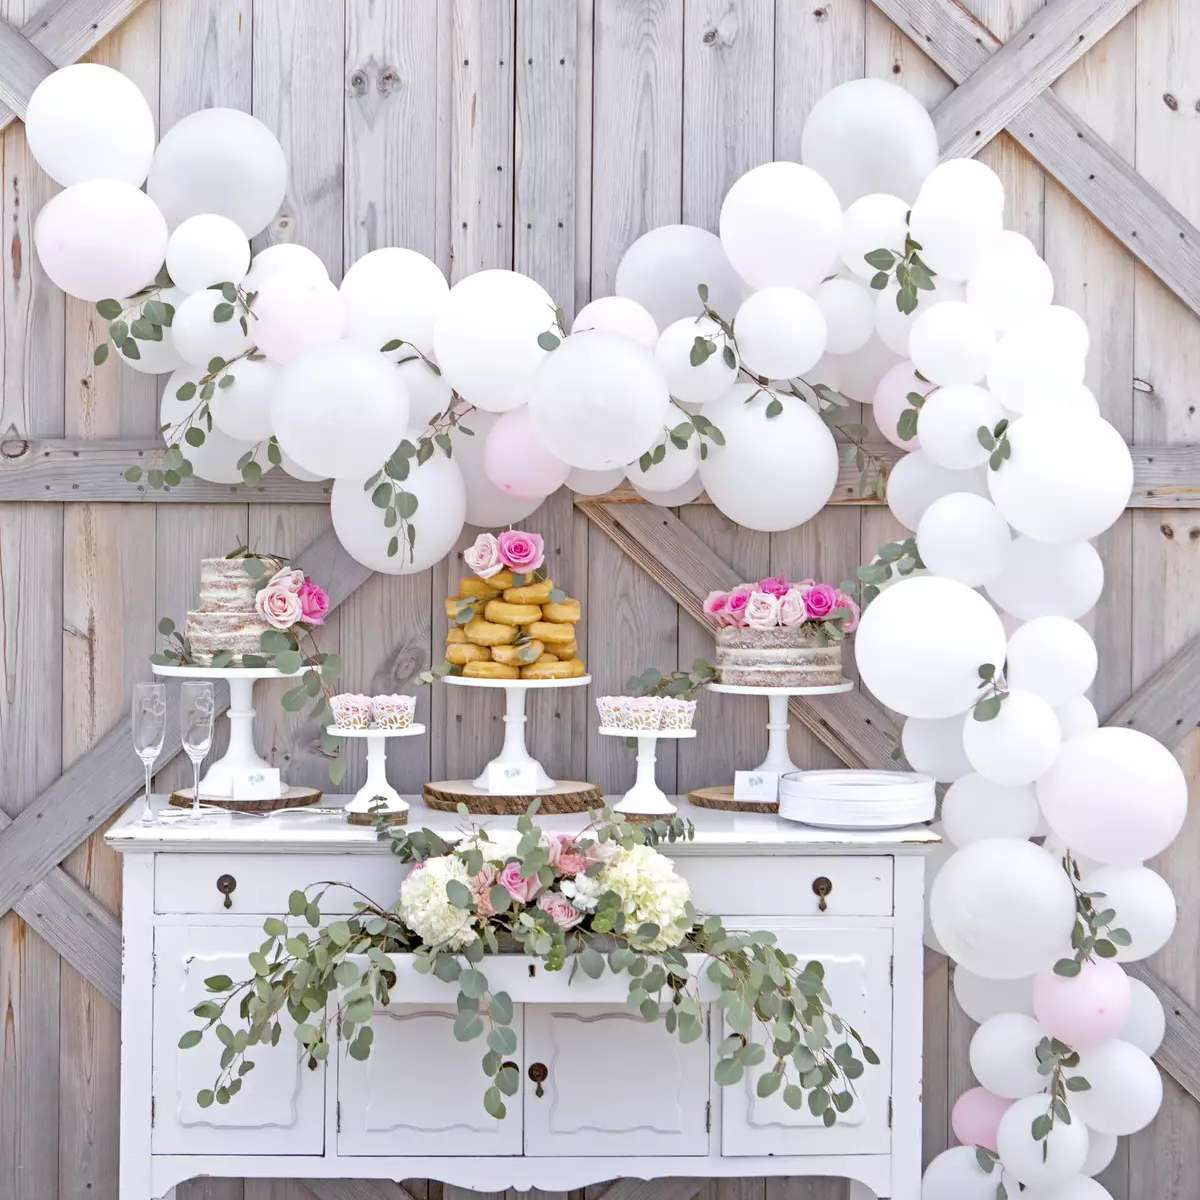 25 Ways To Use Balloons In Your Wedding Decor